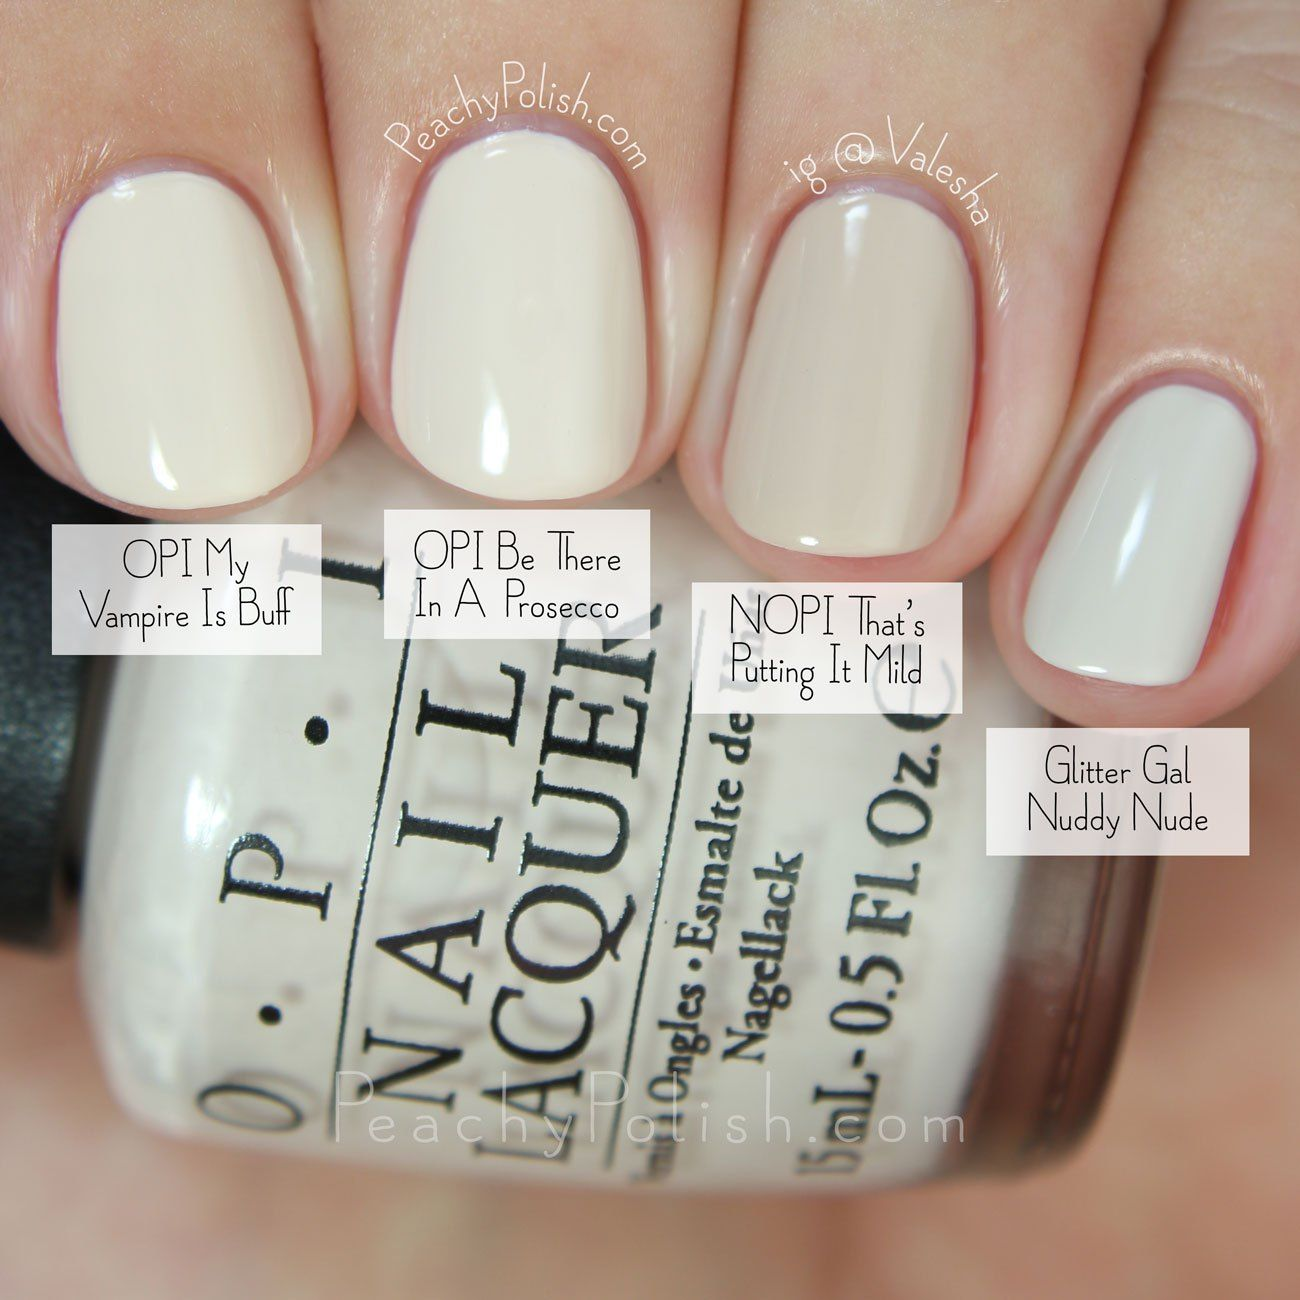 OPI Be There In A Prosecco Comparison | Fall 2015 Venice Collection ...